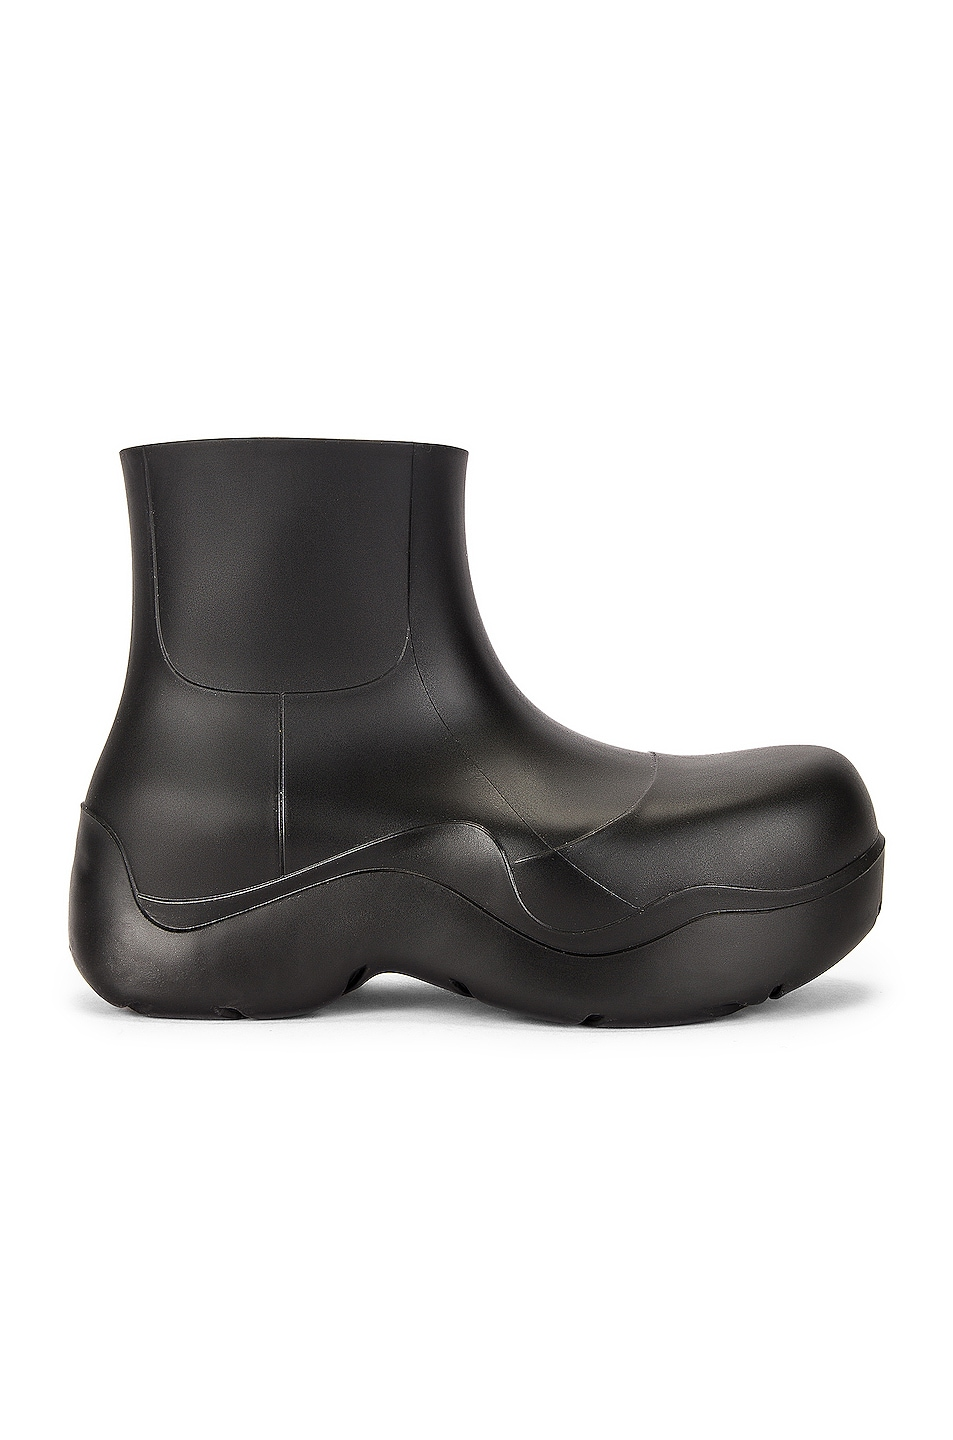 Image 1 of Bottega Veneta The Puddle Boots in Black